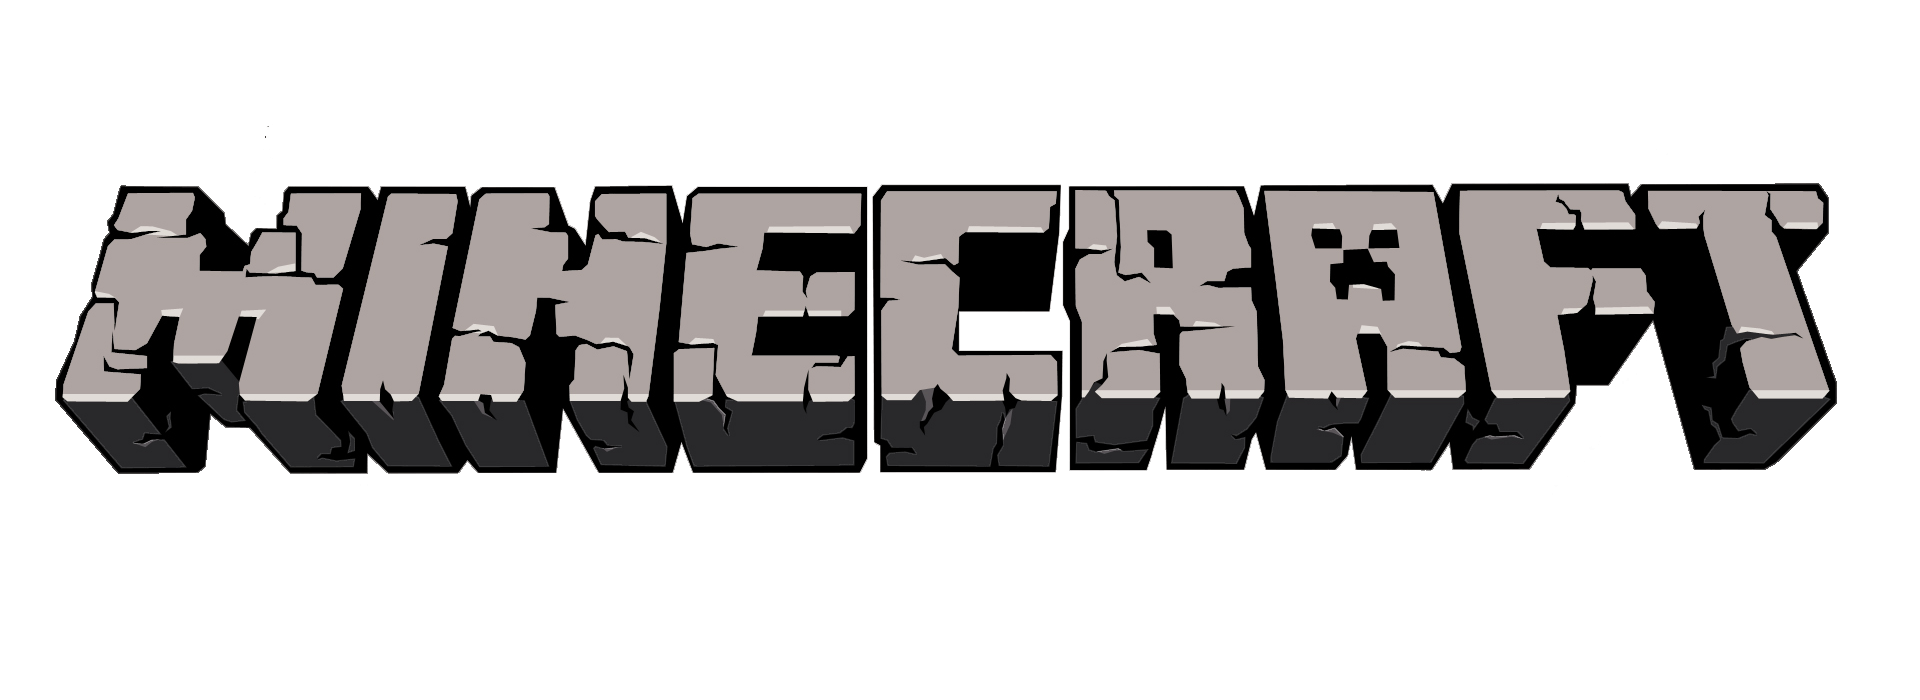 Minecraft lets play png. Quick time tangents minecrafttextjpg